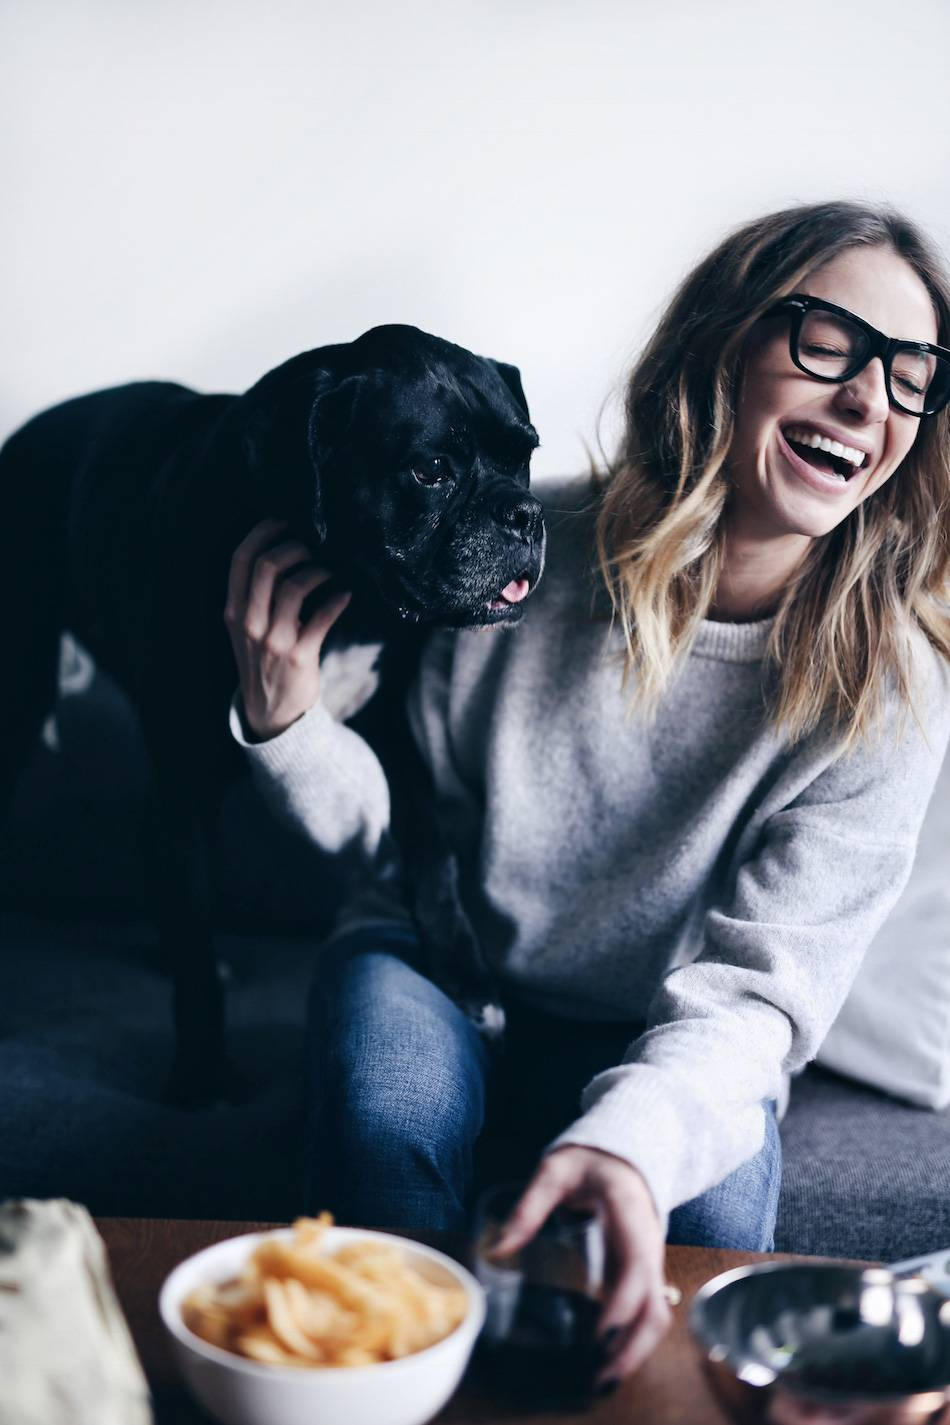 style-and-beauty-blogger-jill-lansky-of-the-august-diaries-top-5-favourite-christmas-movies-and-snacks-celine-glasses-black-boxer